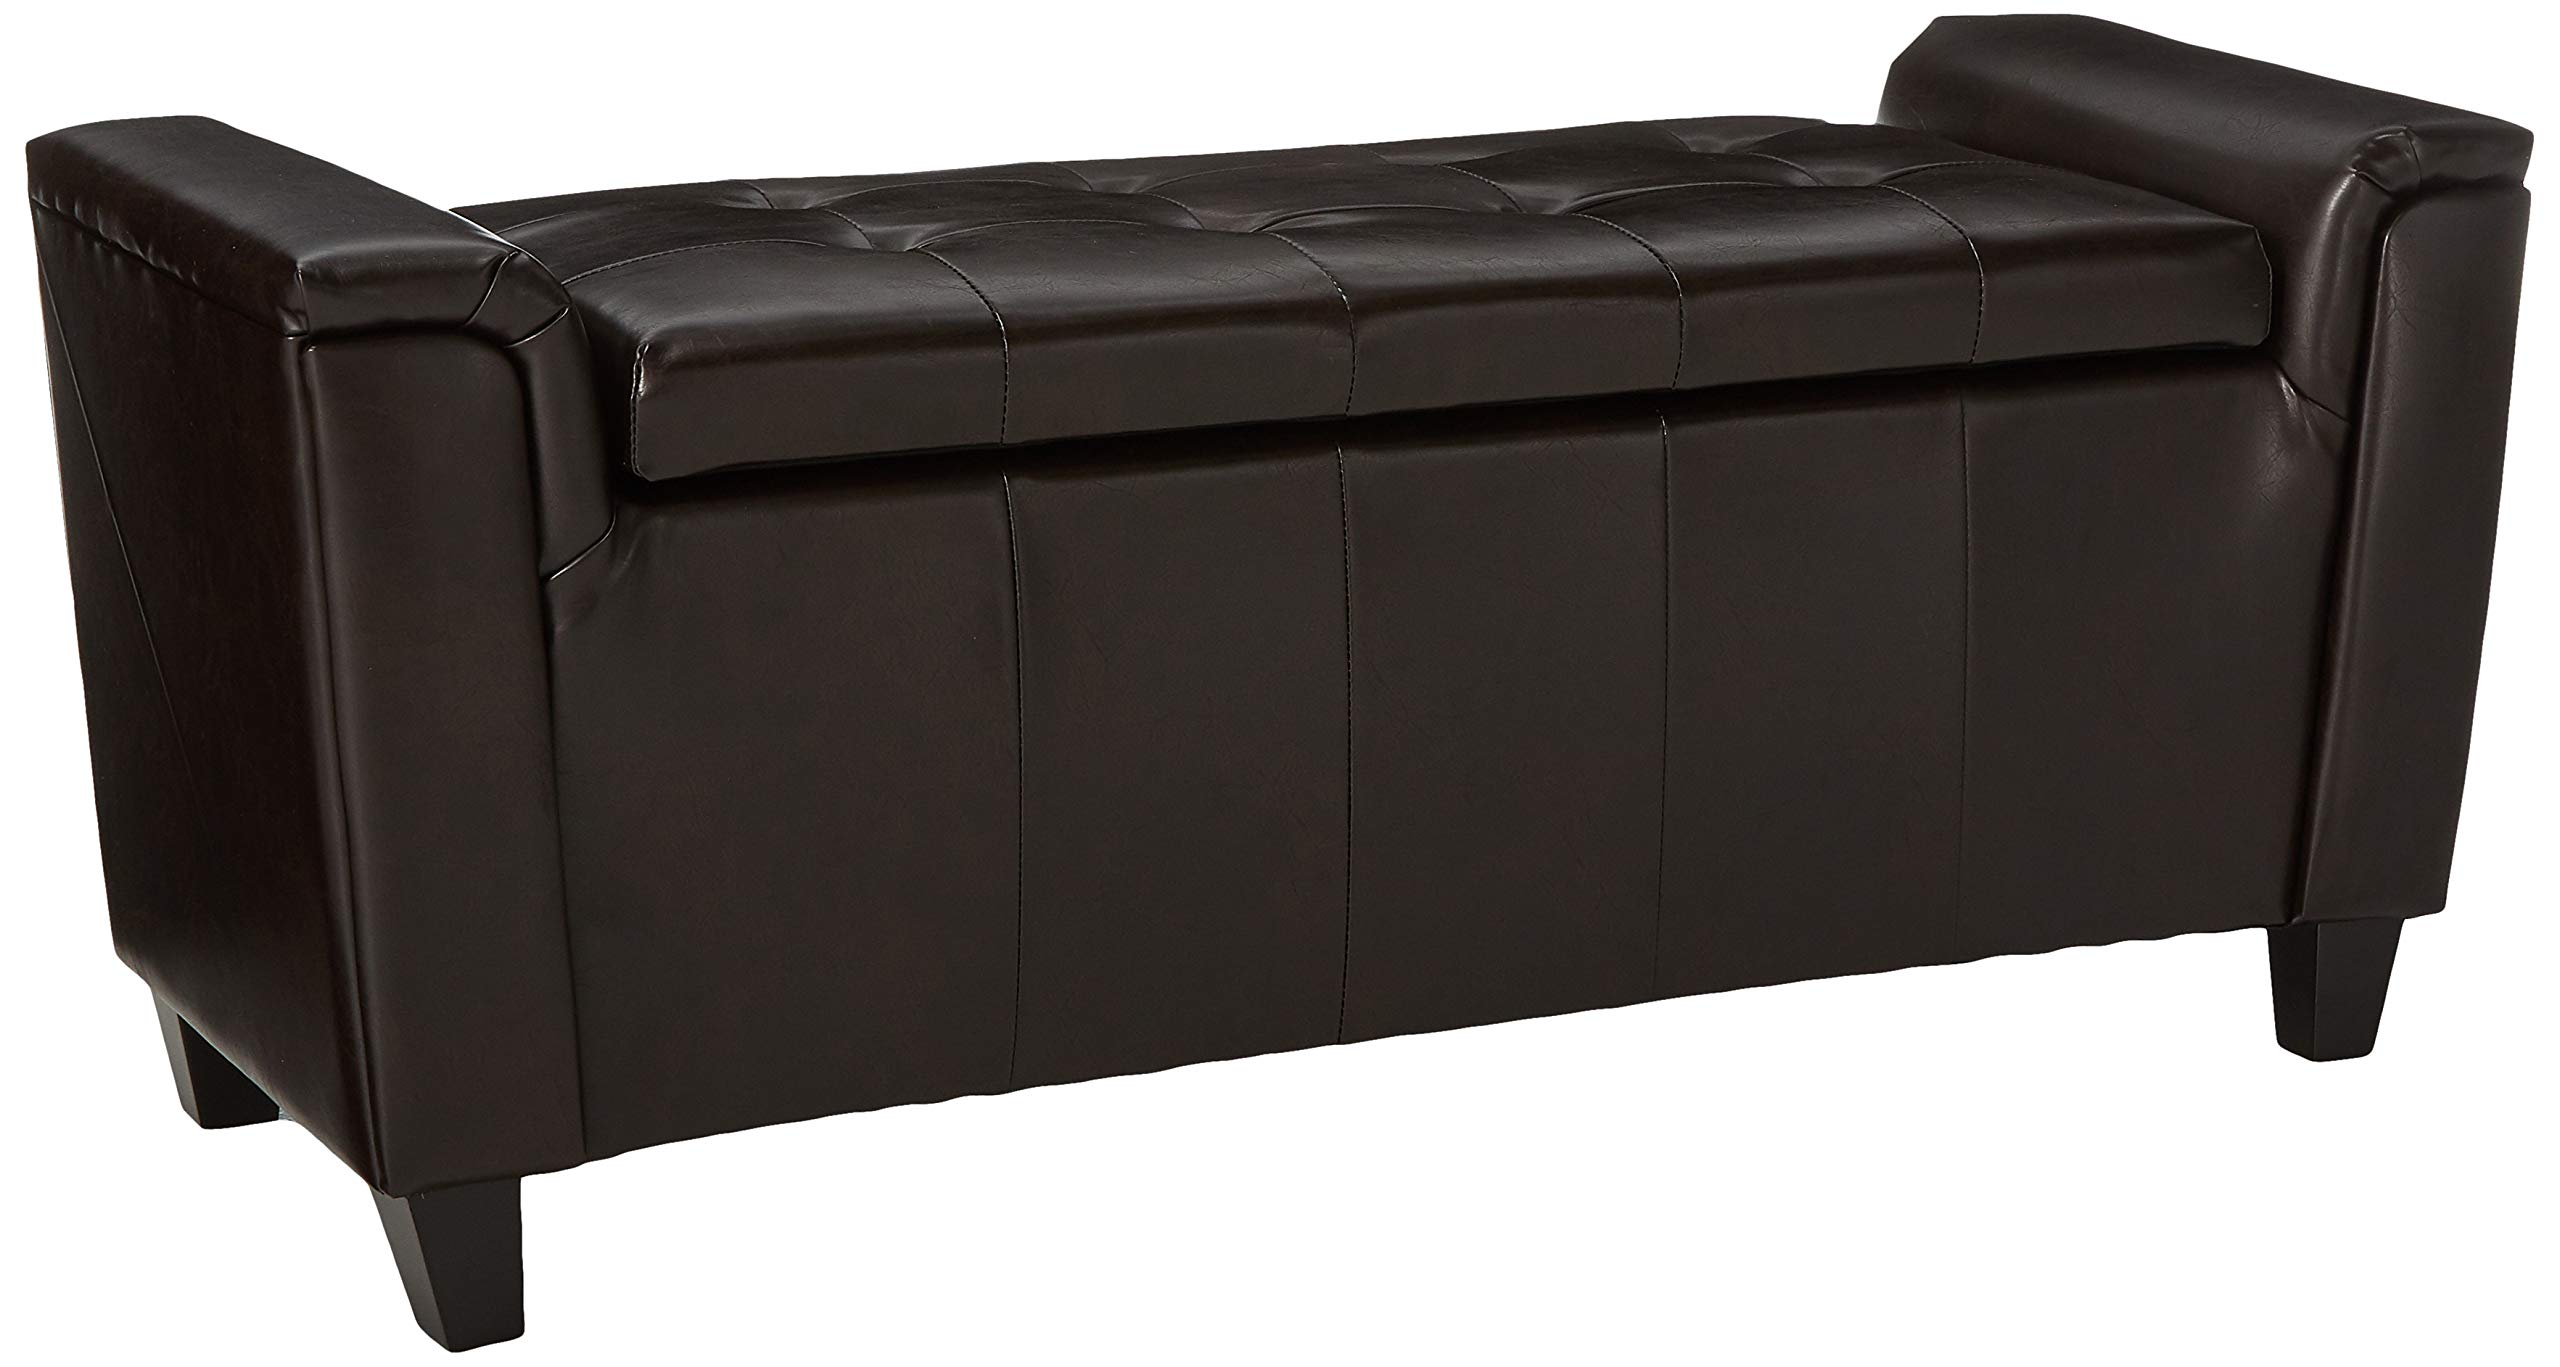 Christopher Knight Home Living James Brown Tufted Leather Armed Storage Ottoman Bench, 17. 50D x 45. 50W x 20.75H by Christopher Knight Home